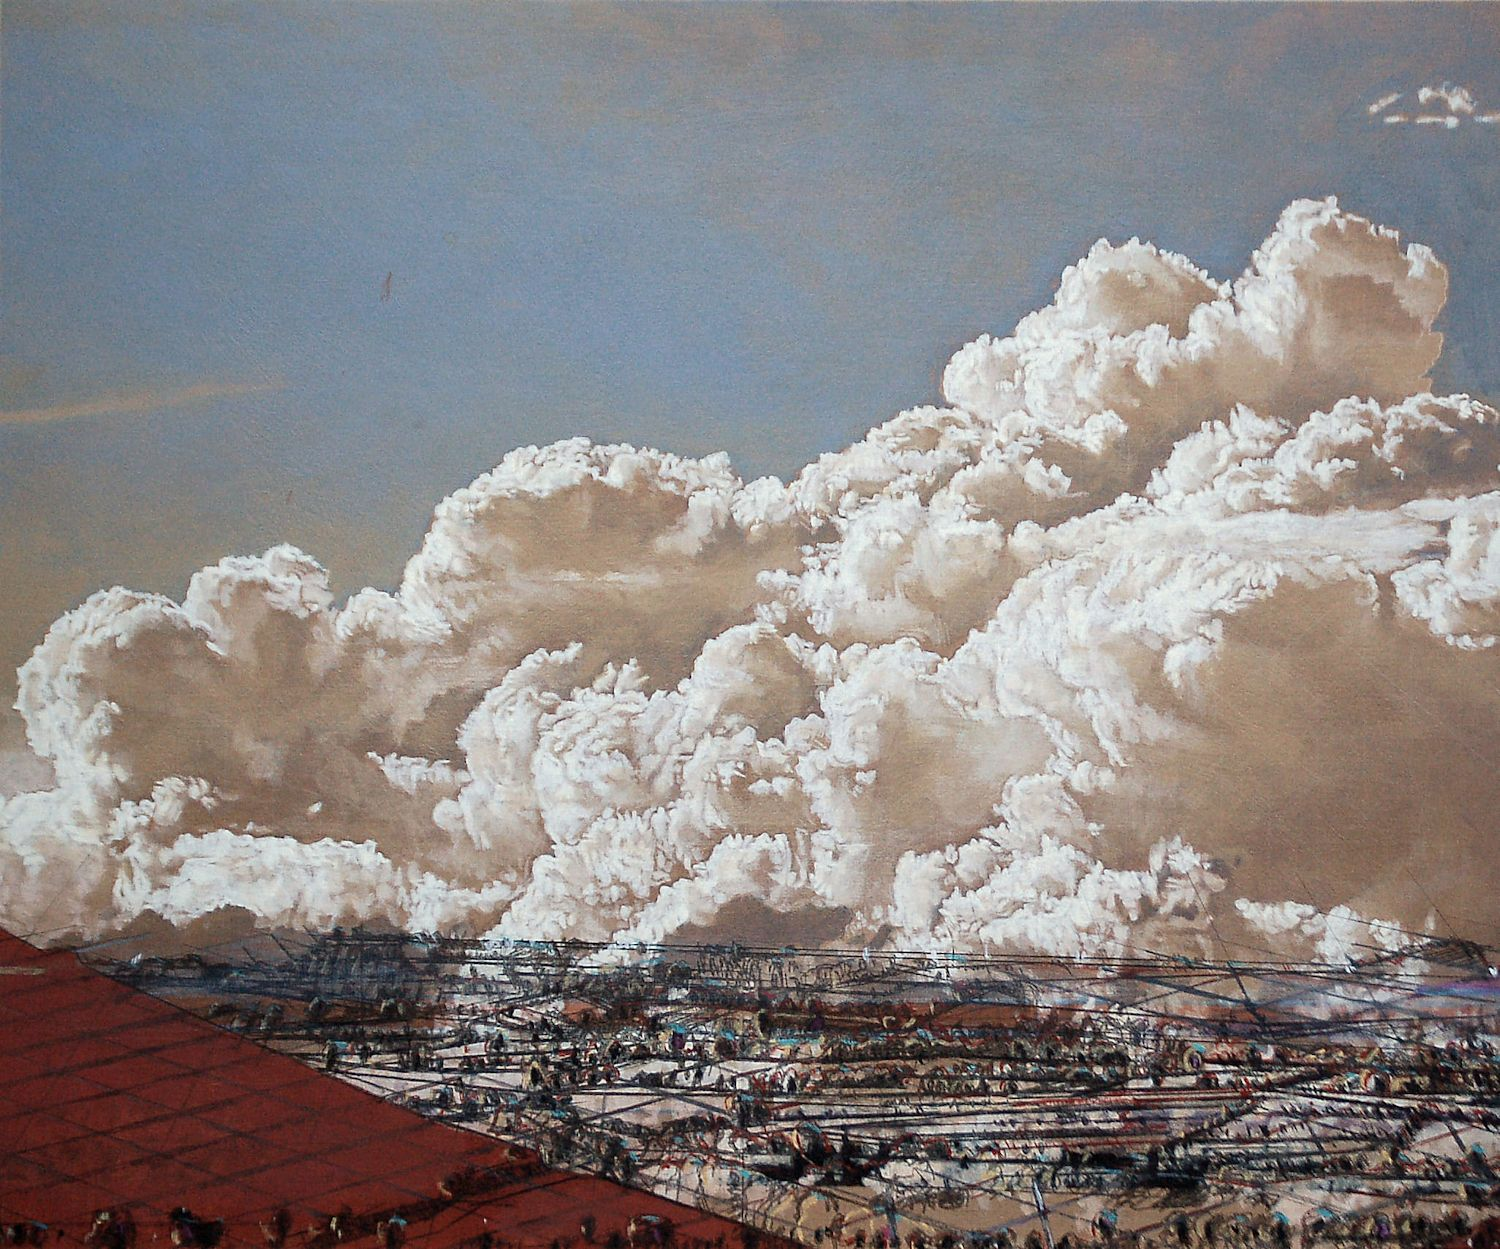 Cloudscape 51, 2008, acrylic on wood, 40 x 48 cm